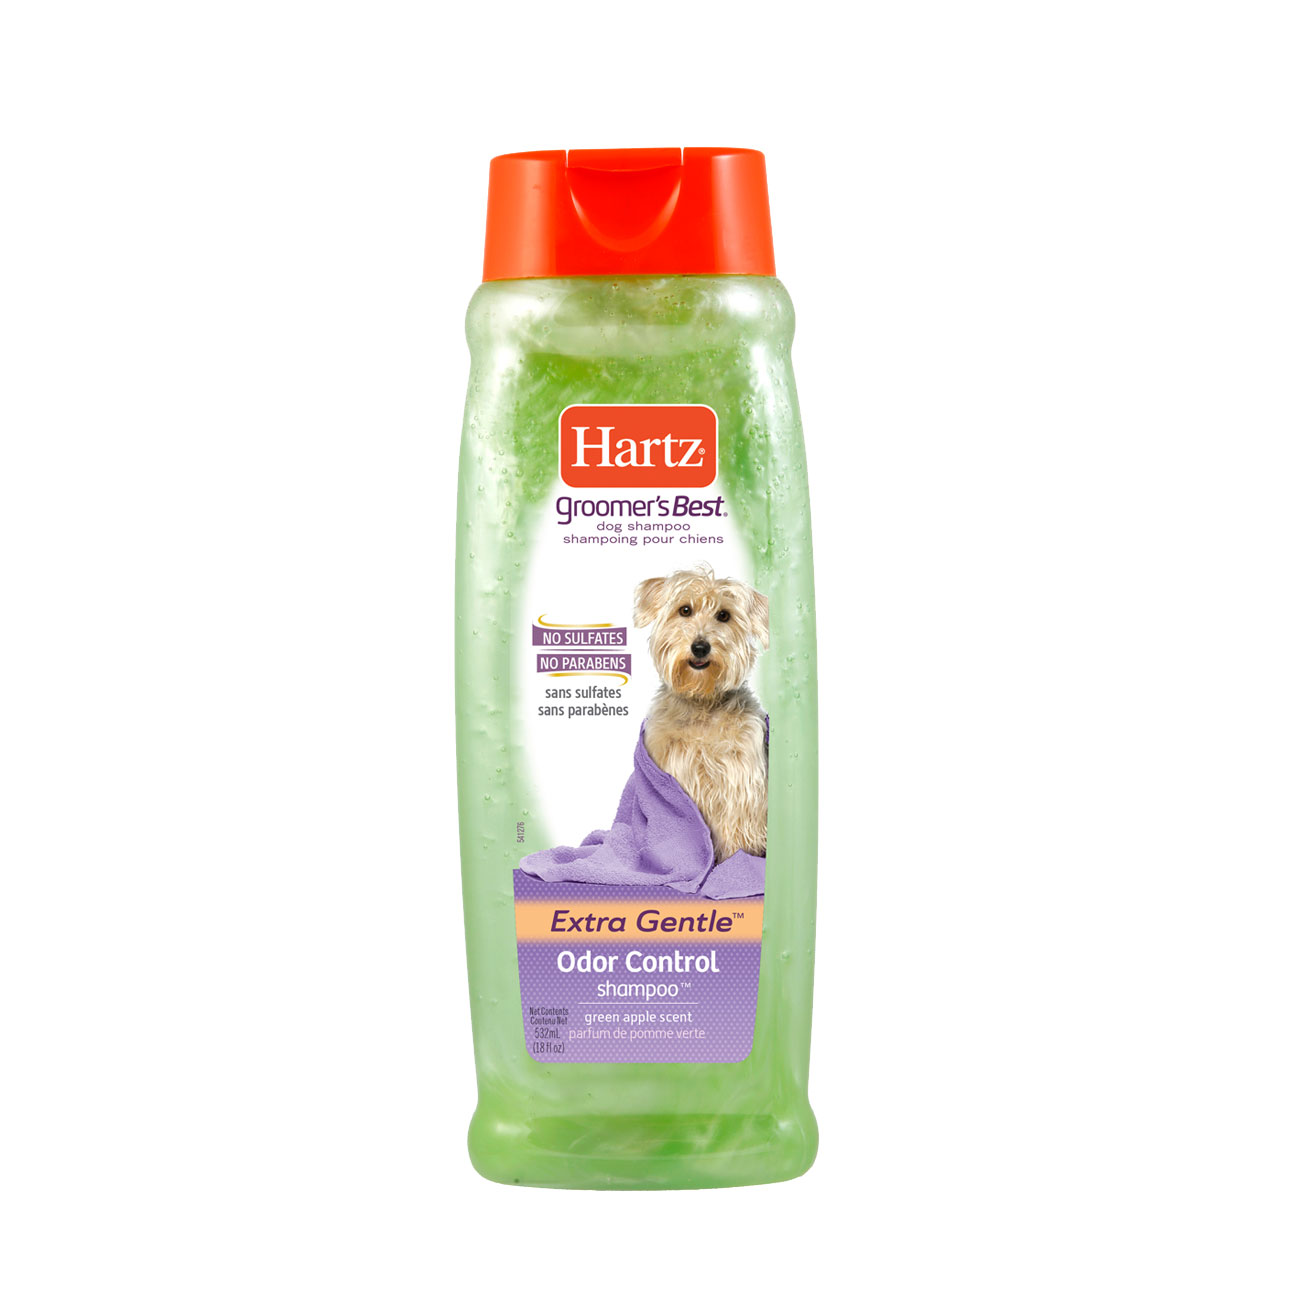 Hartz groomers best odor control shampoo for dogs. Front of package. Learn more about odor control dog shampoo from hartz. Hartz SKU#3270015409.